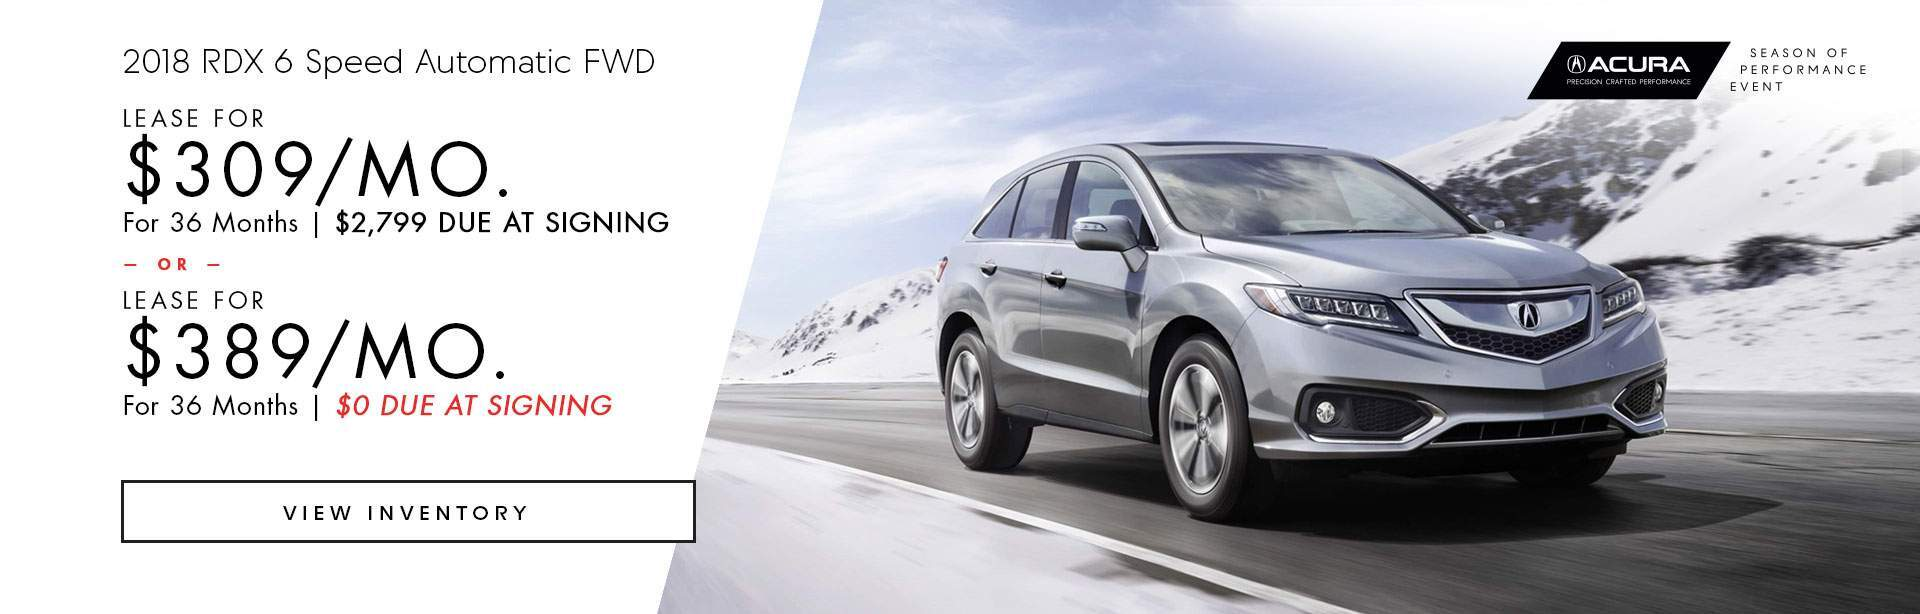 2018 Acura RDX 6 Speed Automatic FWD